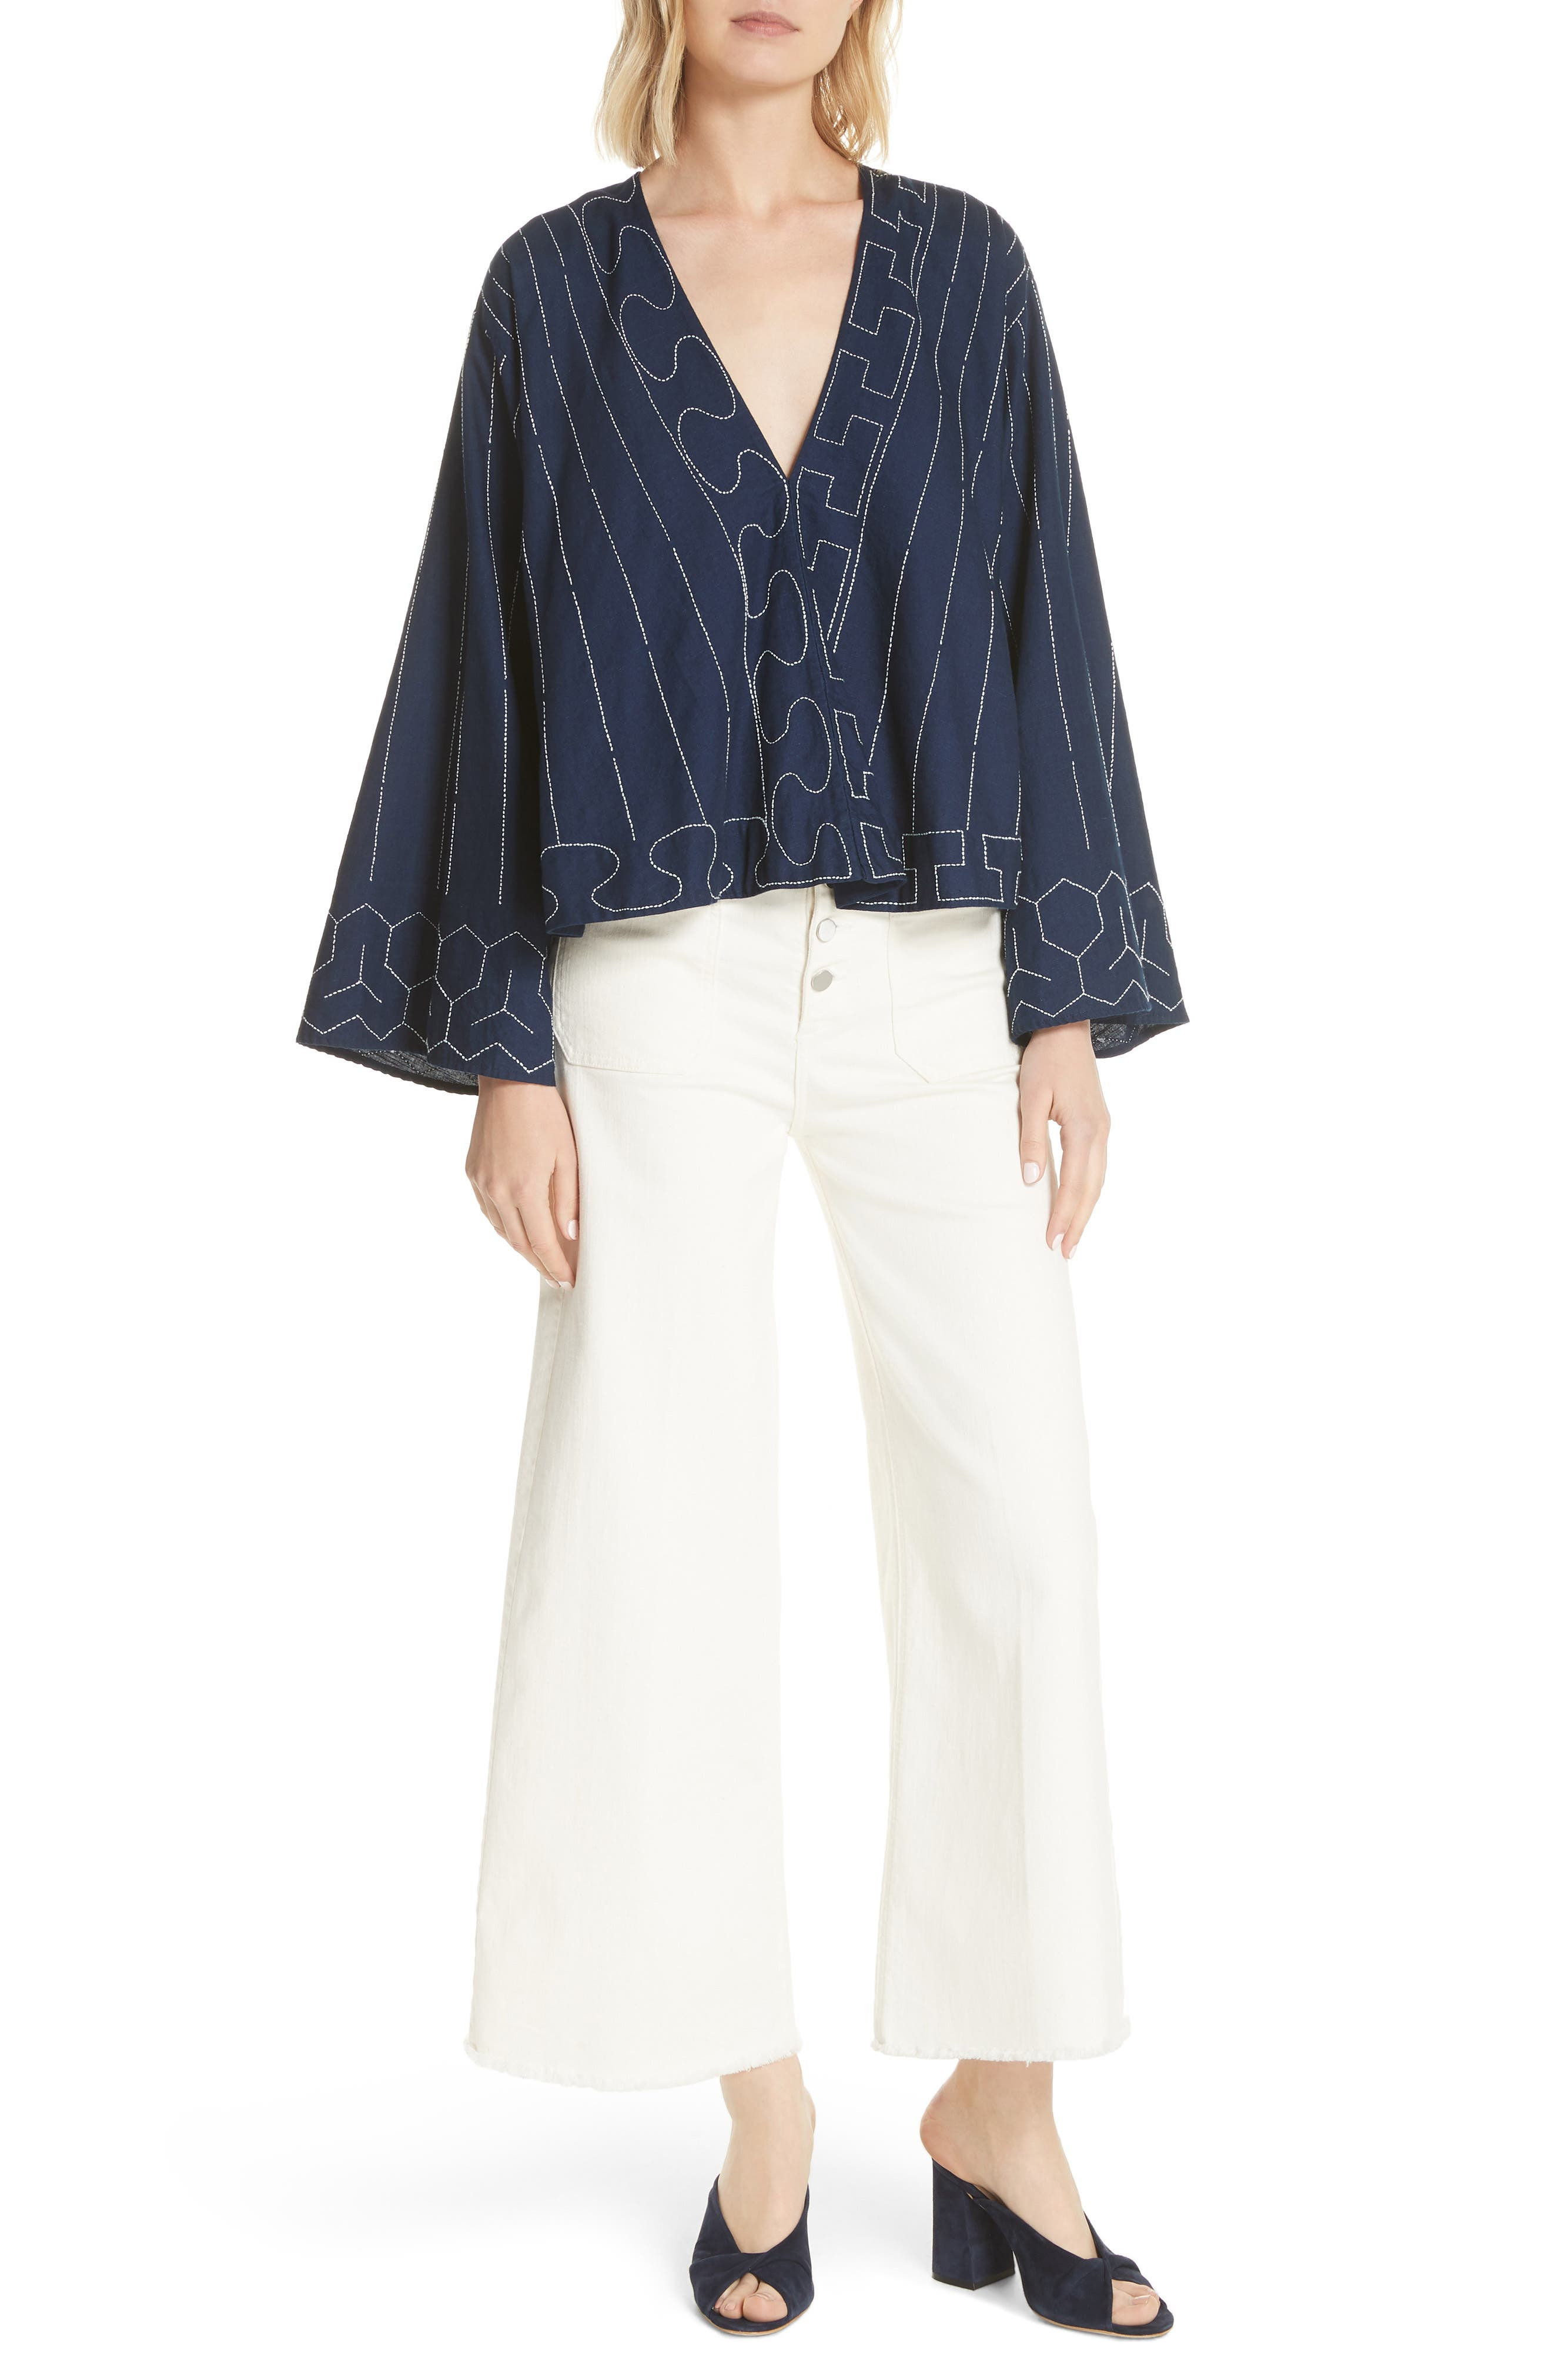 Orchid Embroidered Top,                             Alternate thumbnail 7, color,                             481